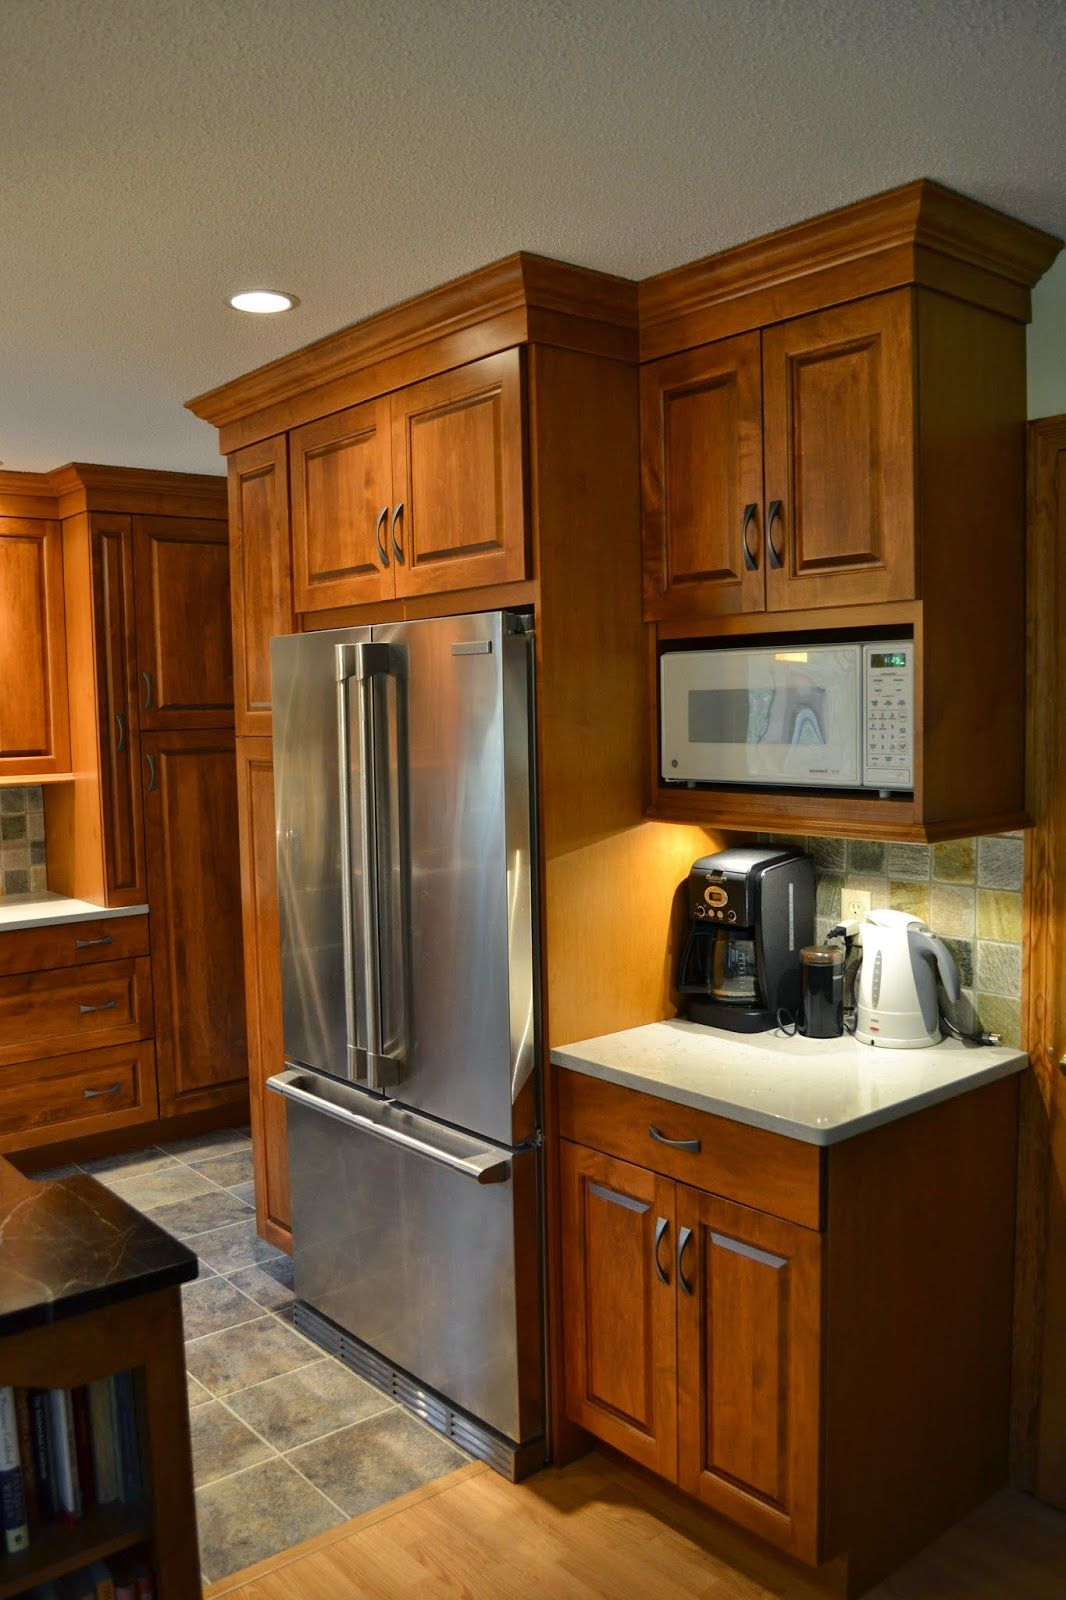 Kraftmaid Double Oven Cabinet Dimensions - Frameimage.org